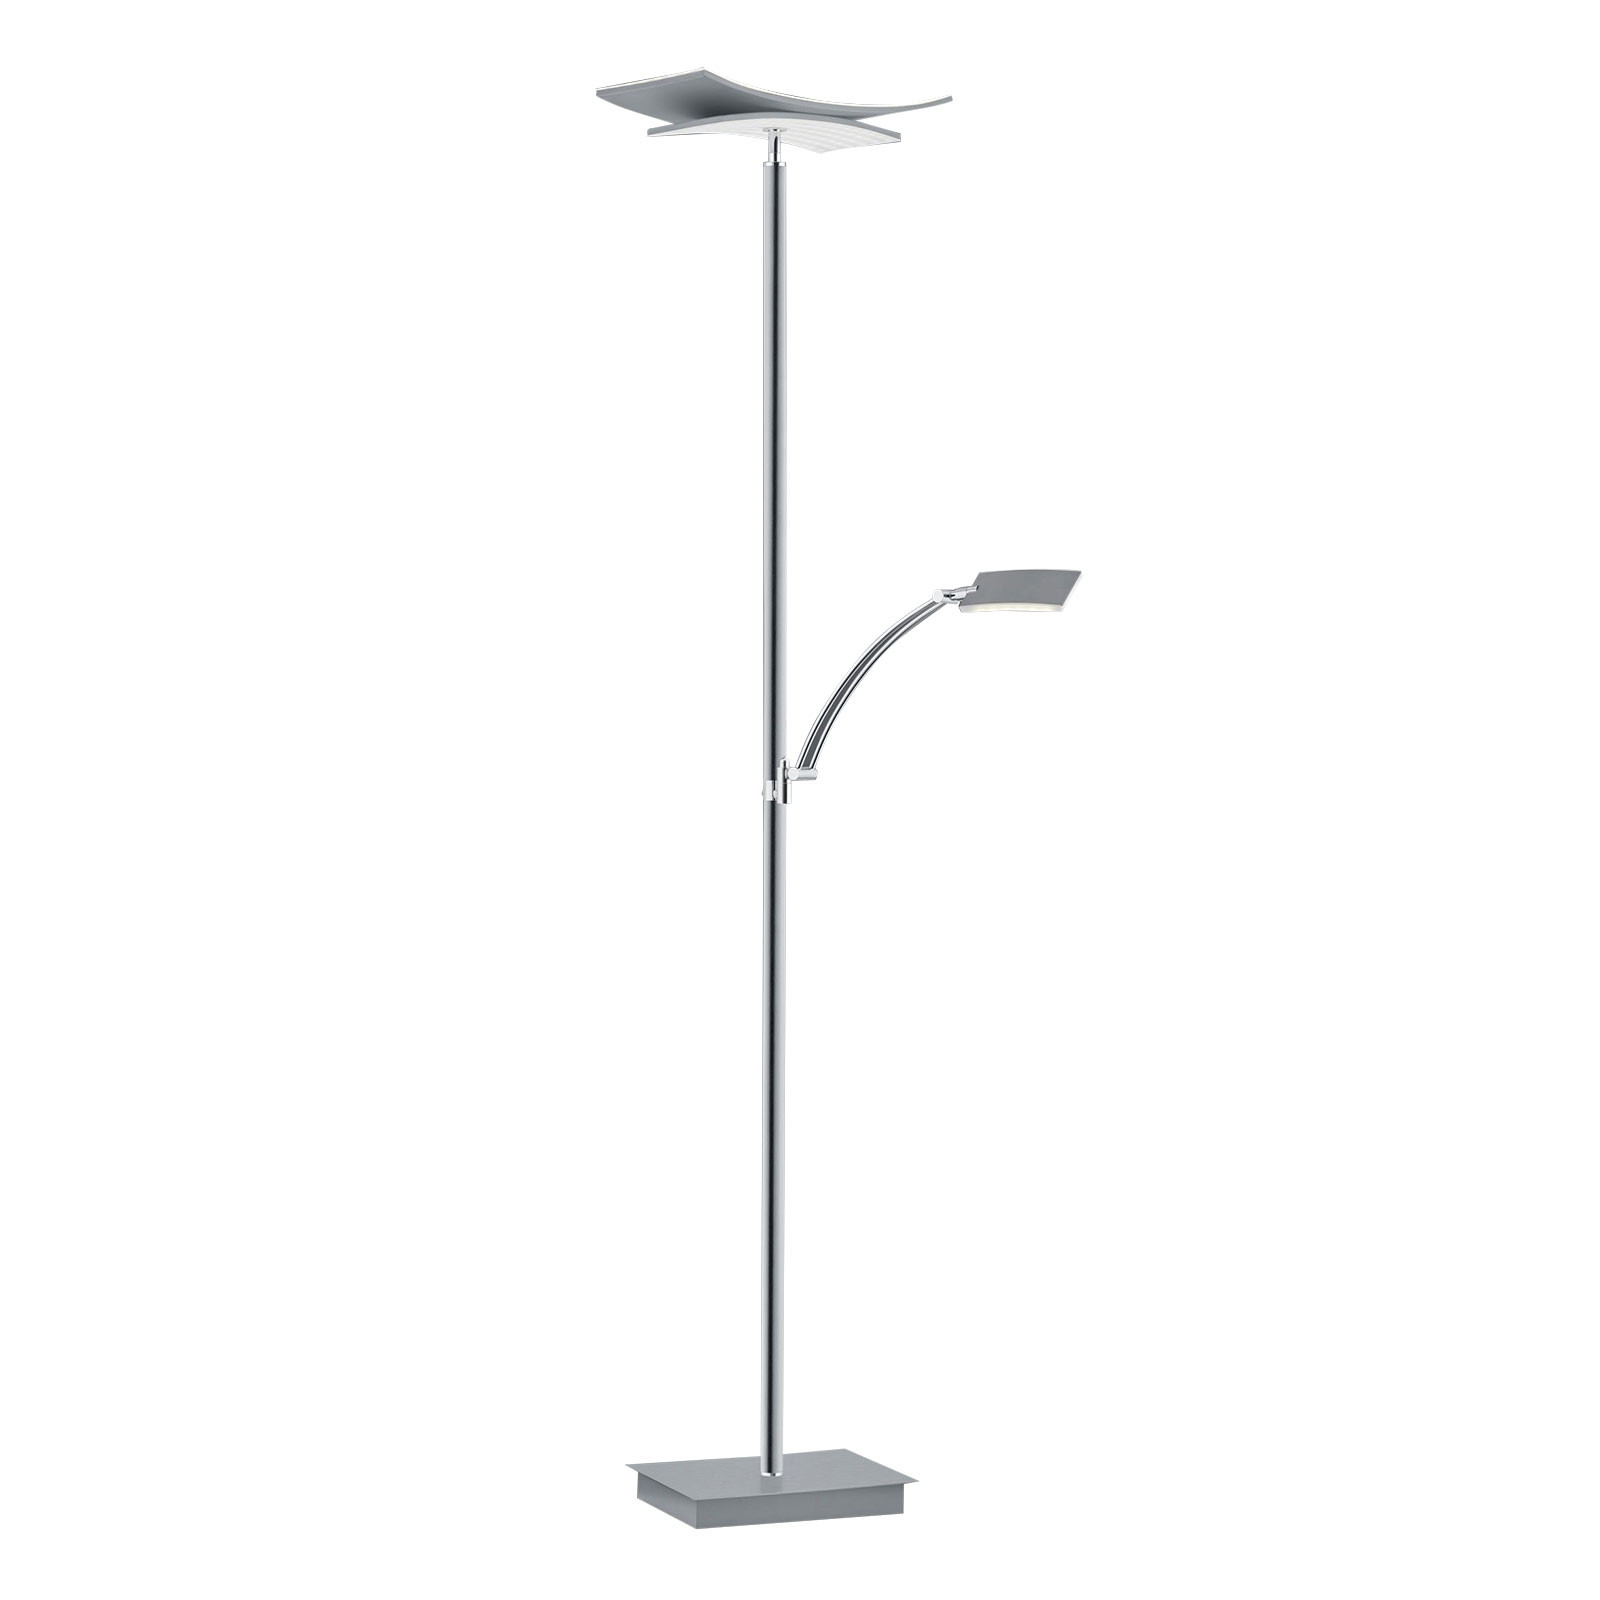 B-Leuchten Liberty lampadaire LED liseuse nickel